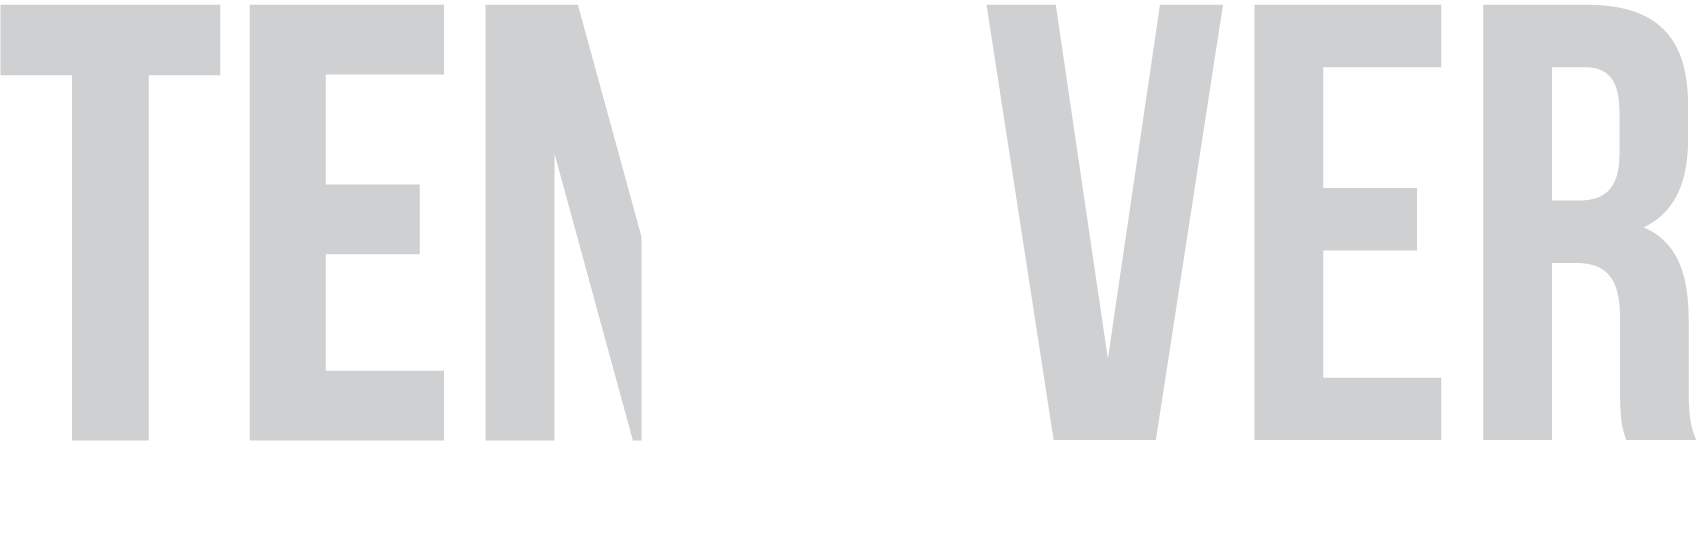 LOGO-Extended copy.png